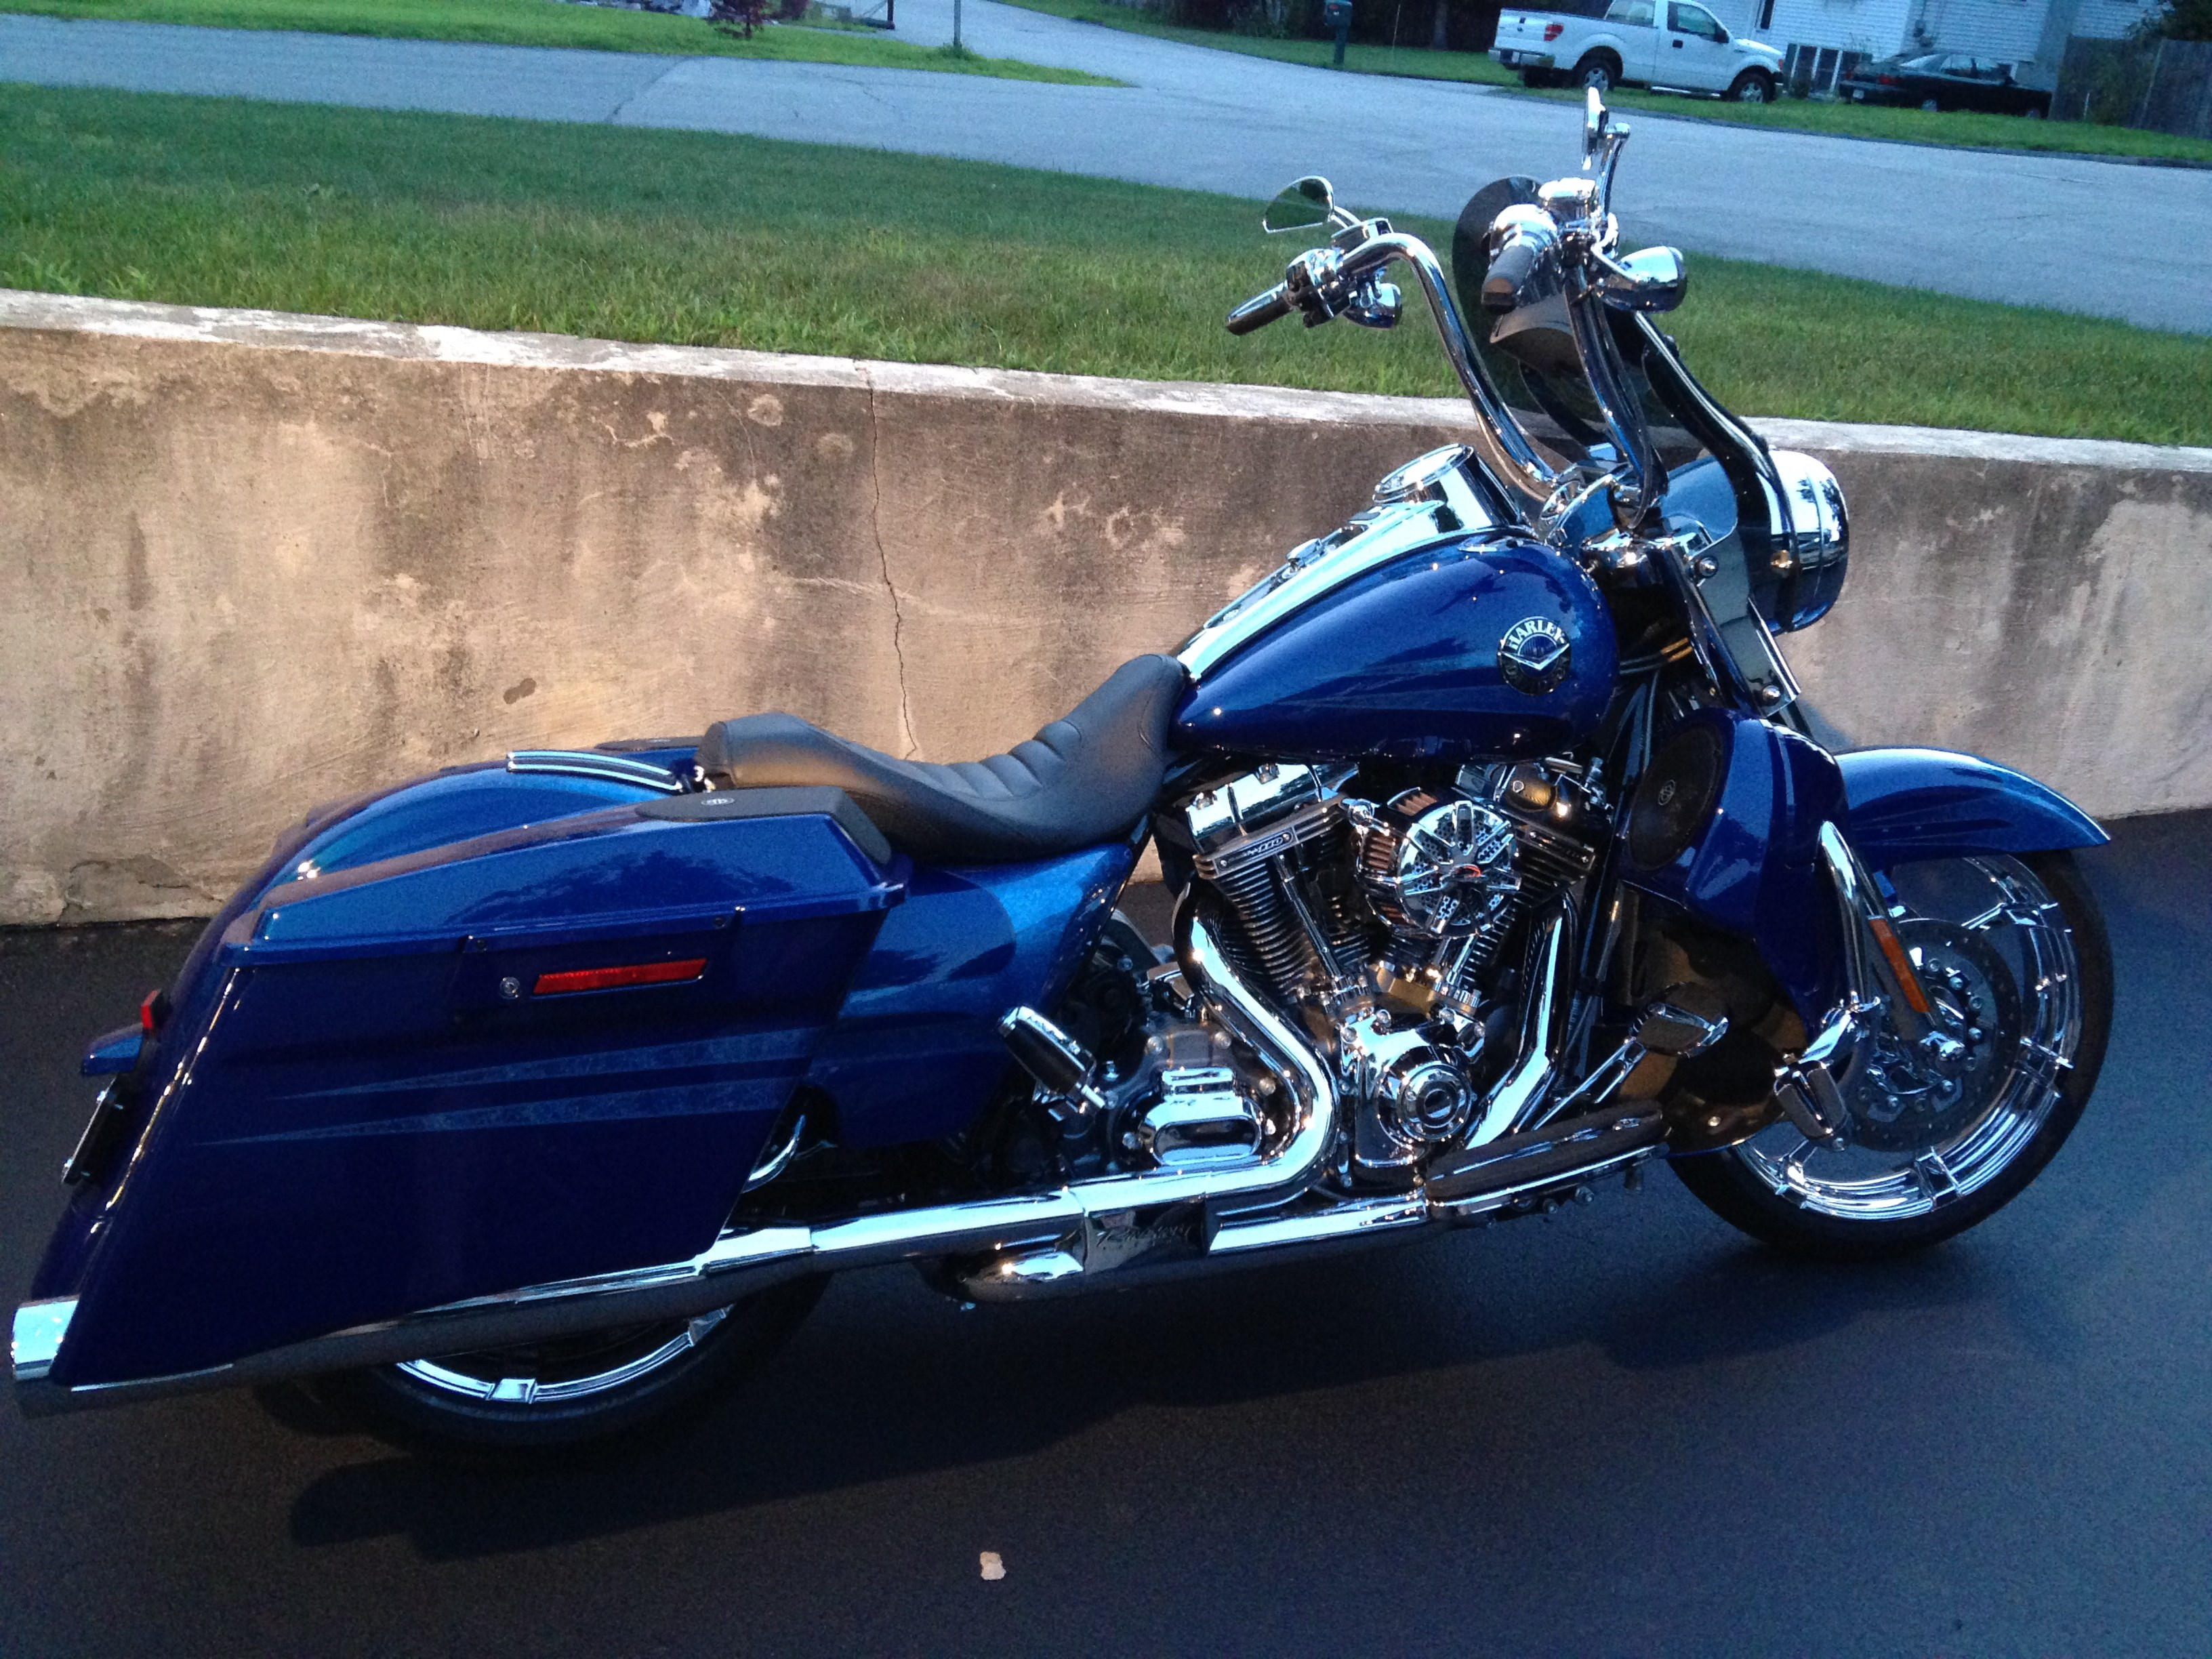 Harley Road King For Sale >> 2013 Harley-Davidson® FLHRSE5 CVO™ Road King® (Crushed Sapphire with Cold Fusion Graphics ...